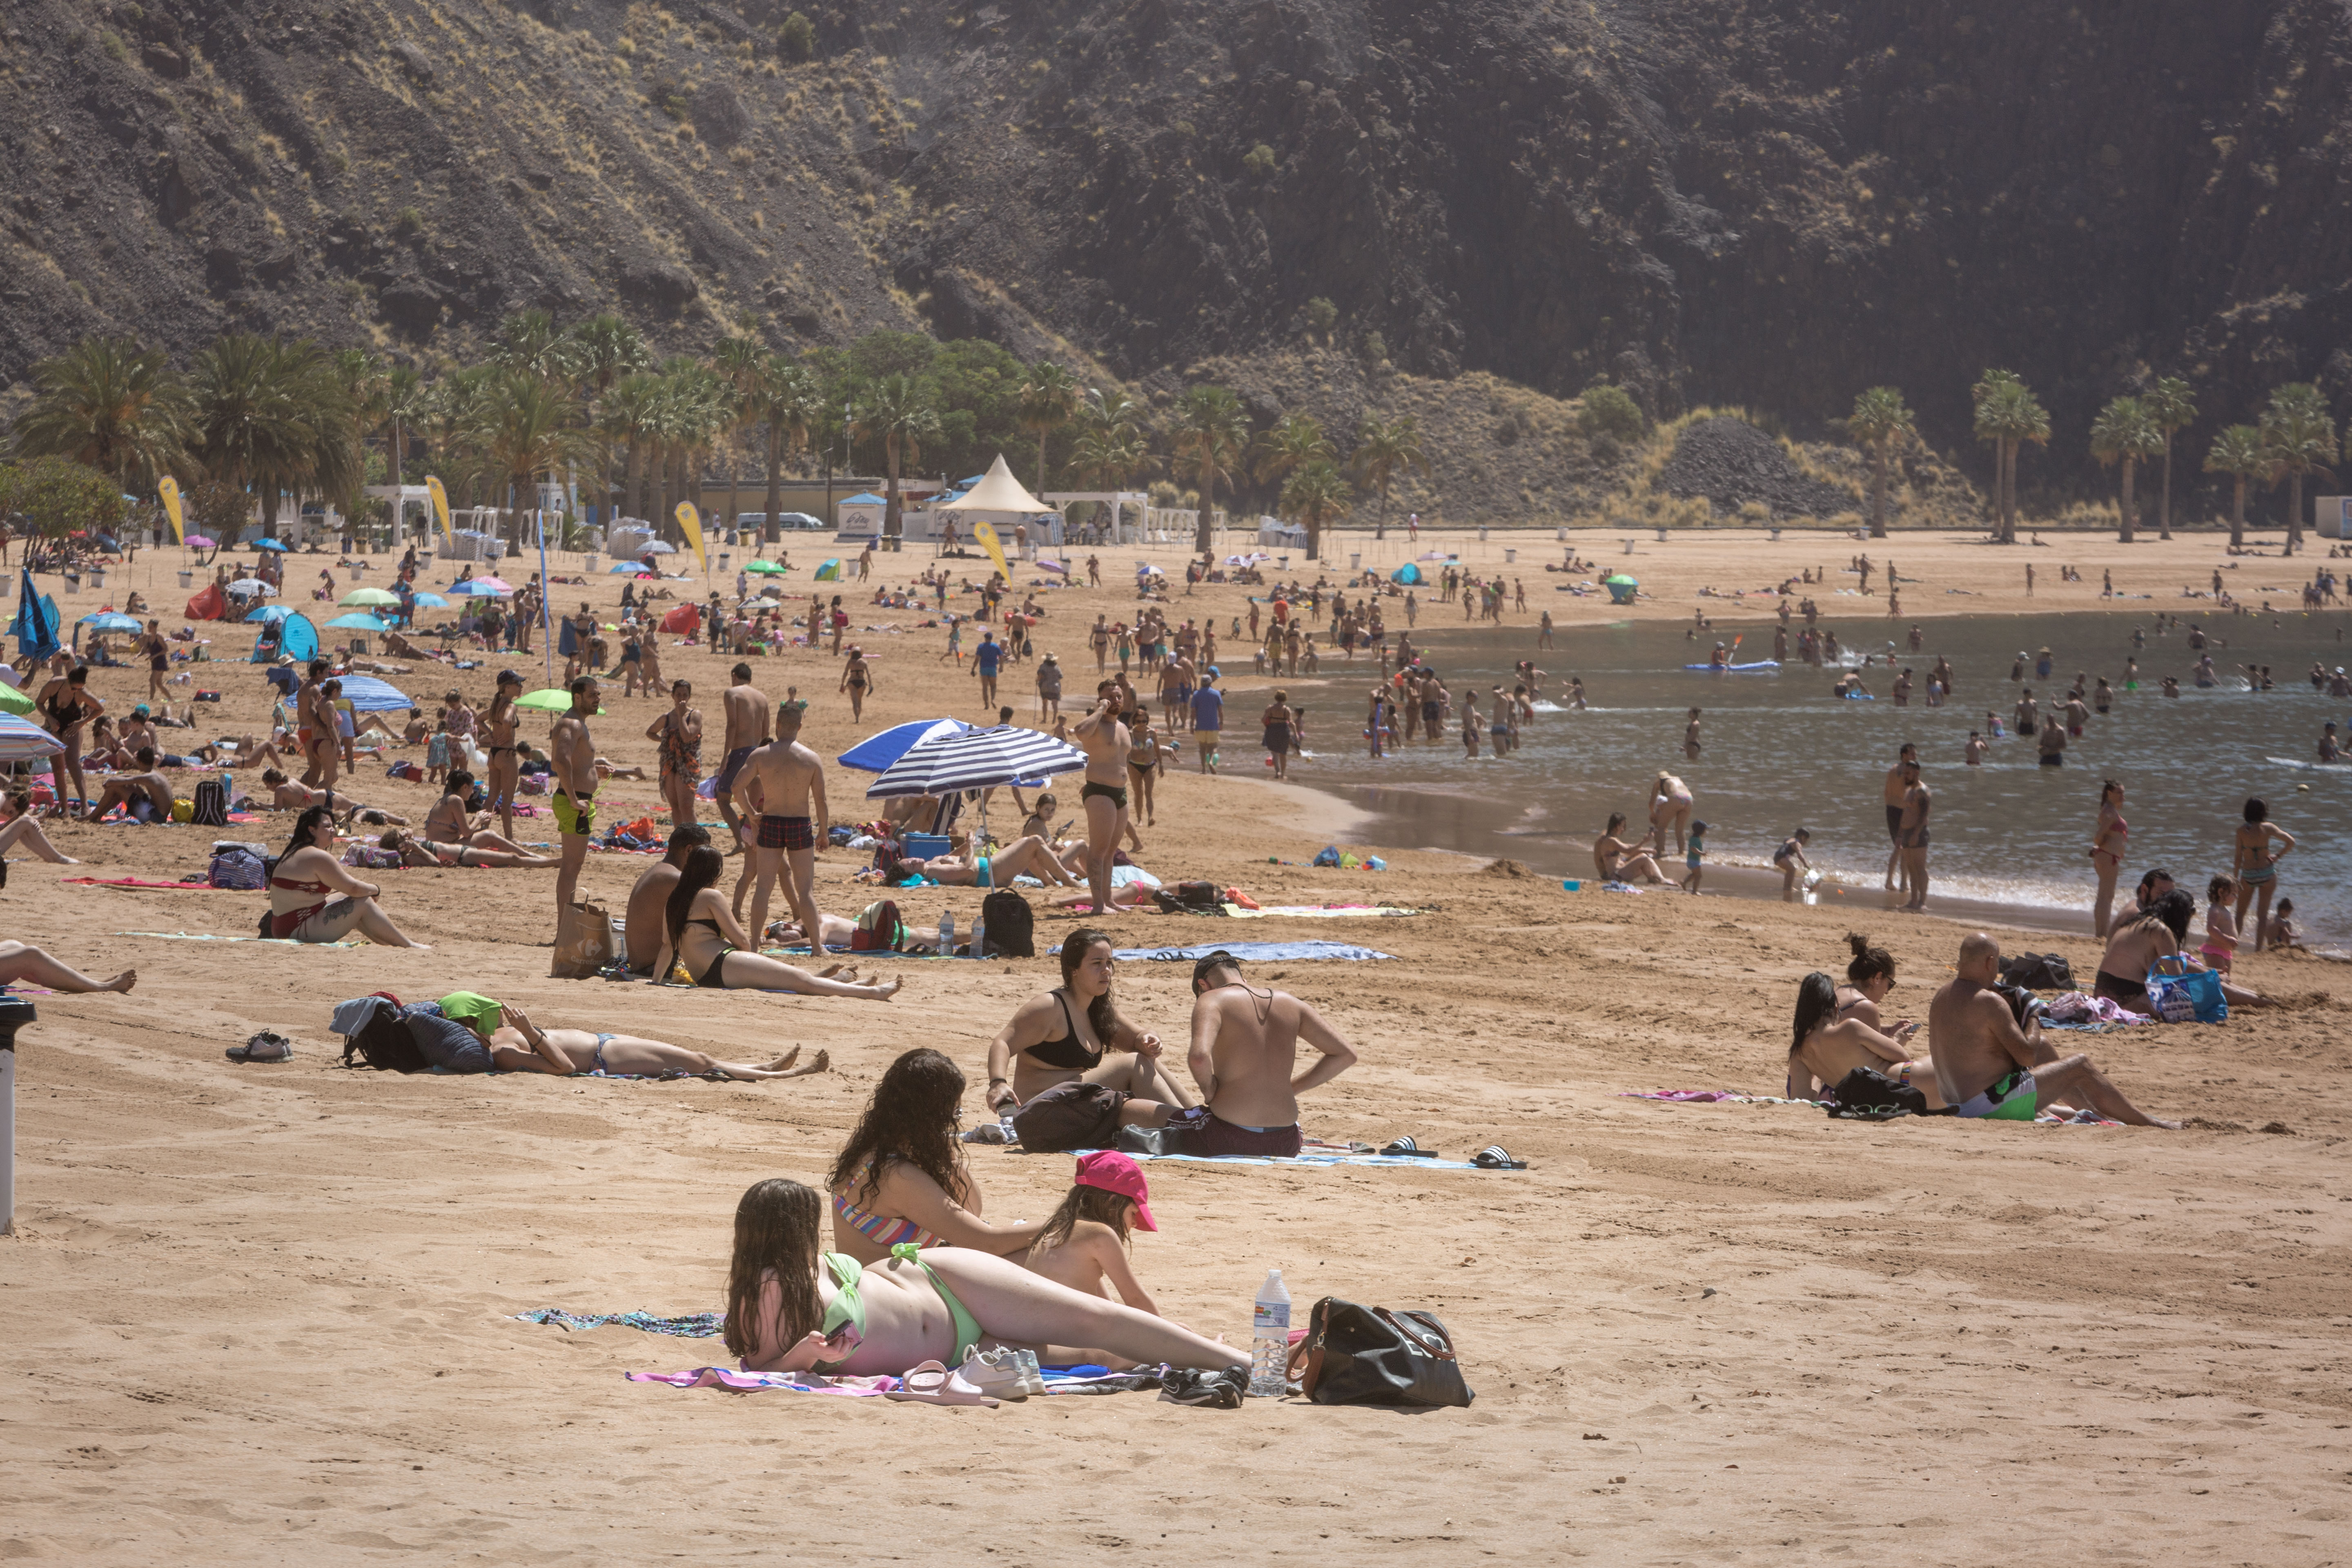 People sunbathe at Las Teresitas beach in the Spanish Canry Island of Tenerife on May 25, 2020, on the first day after beaches reopened in parts of the country after months-long closures. - Regions incorporating just under half of Spain's nearly 47 million inhabitants were moving into phase two of the three-stage rollback that is due to be completed by the end of June. (Photo by DESIREE MARTIN / AFP) (Photo by DESIREE MARTIN/AFP via Getty Images)